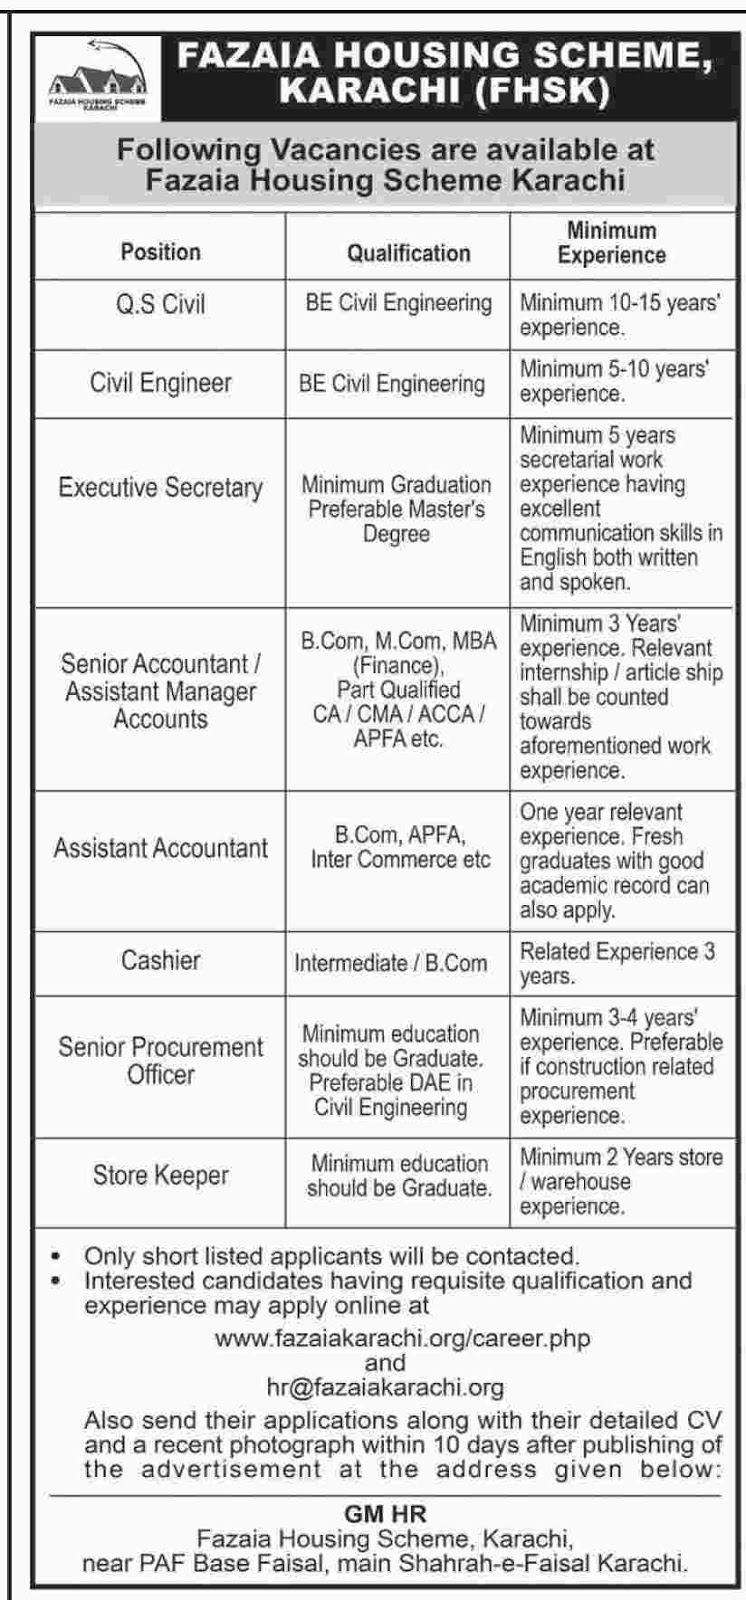 FHSK Jobs In Fazaia Housing Scheme Karachi 26 Sep 2017